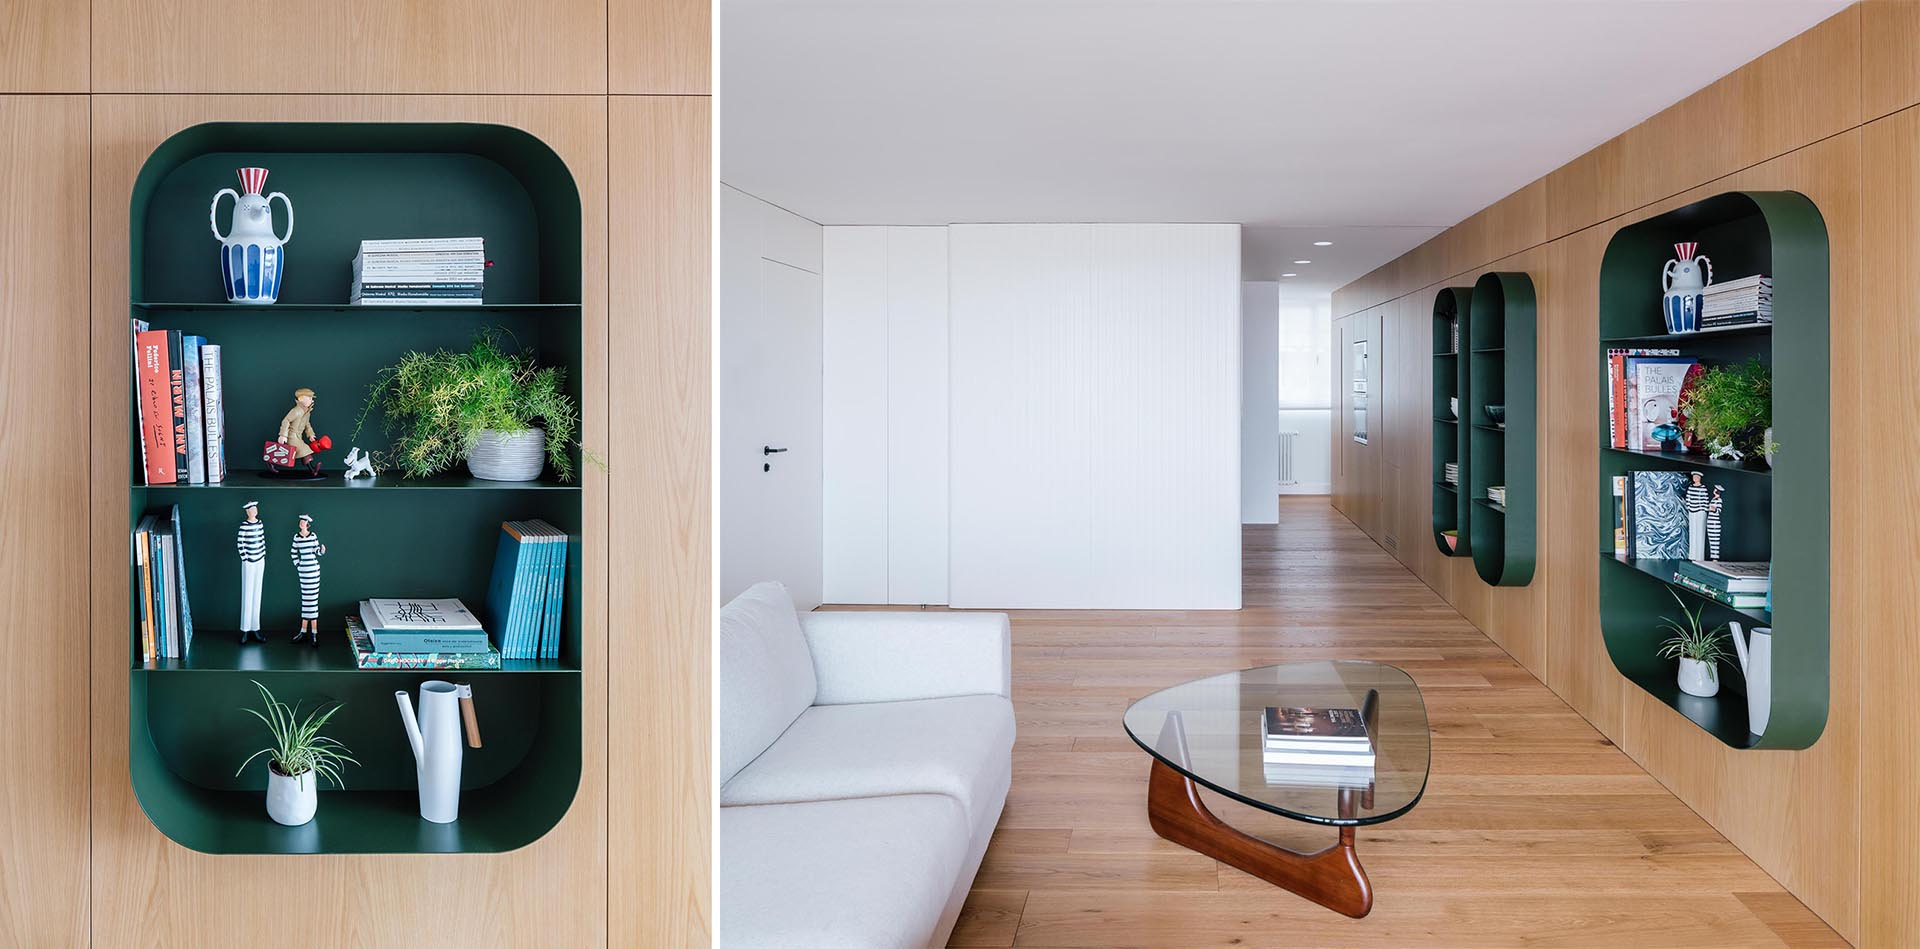 A modern apartment with dark green shelves embedded into the wall.